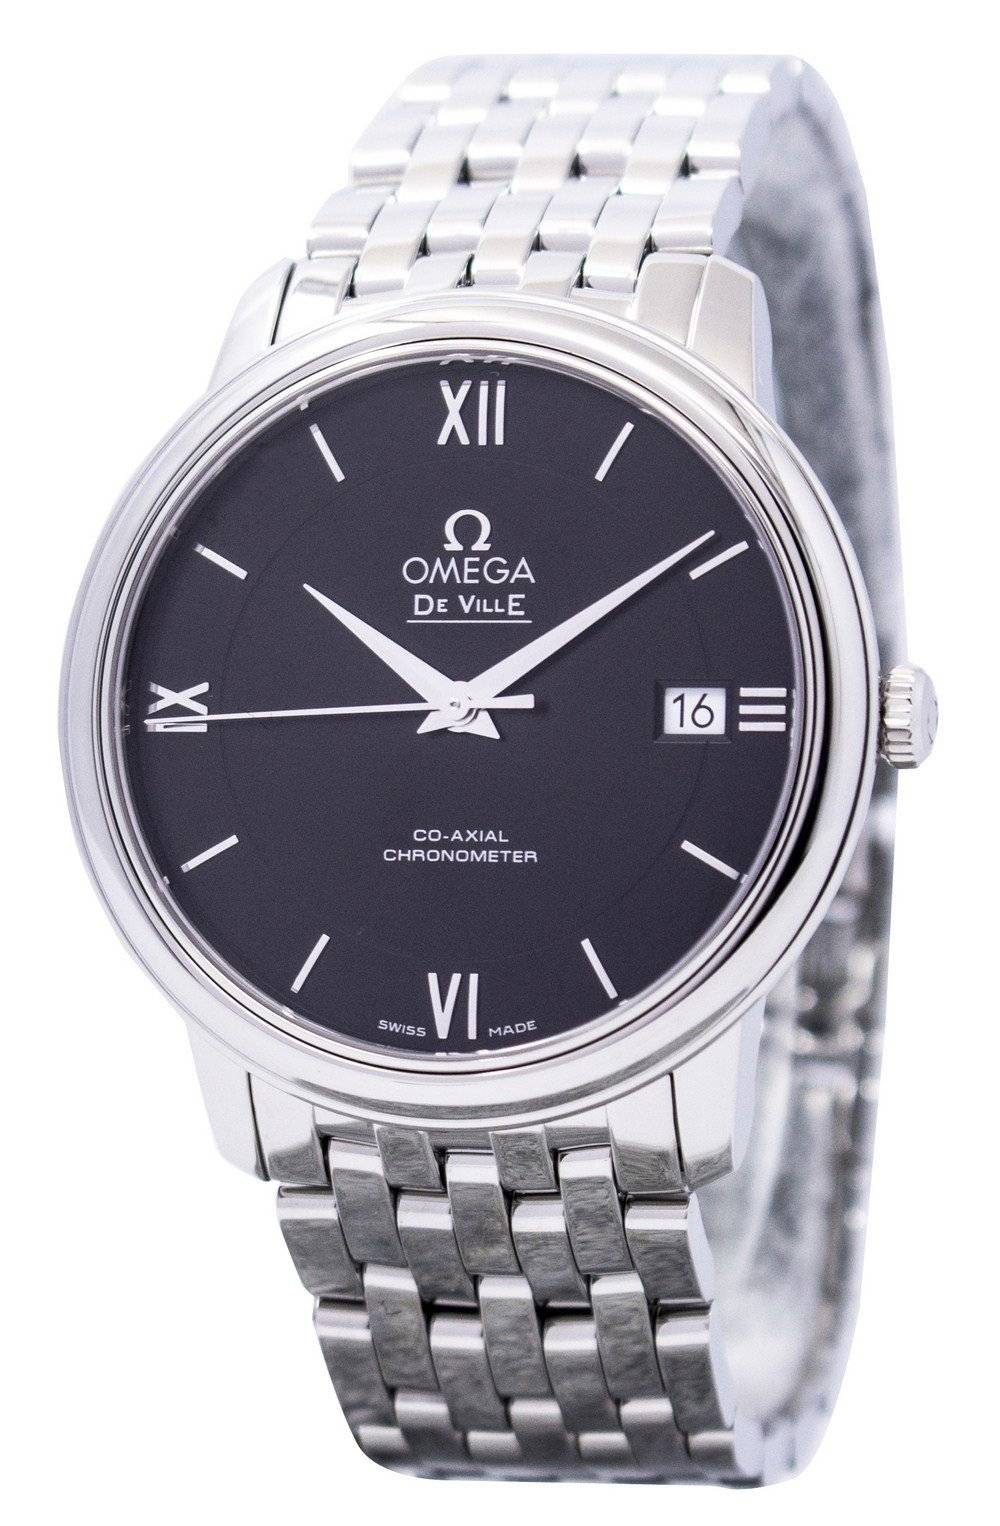 In addition to our standard 30 day money back guarantee, all orders placed between Brands: Baume & Mercier, Cartier, Citizen, Fossil, Michael Kors, Omega and more.